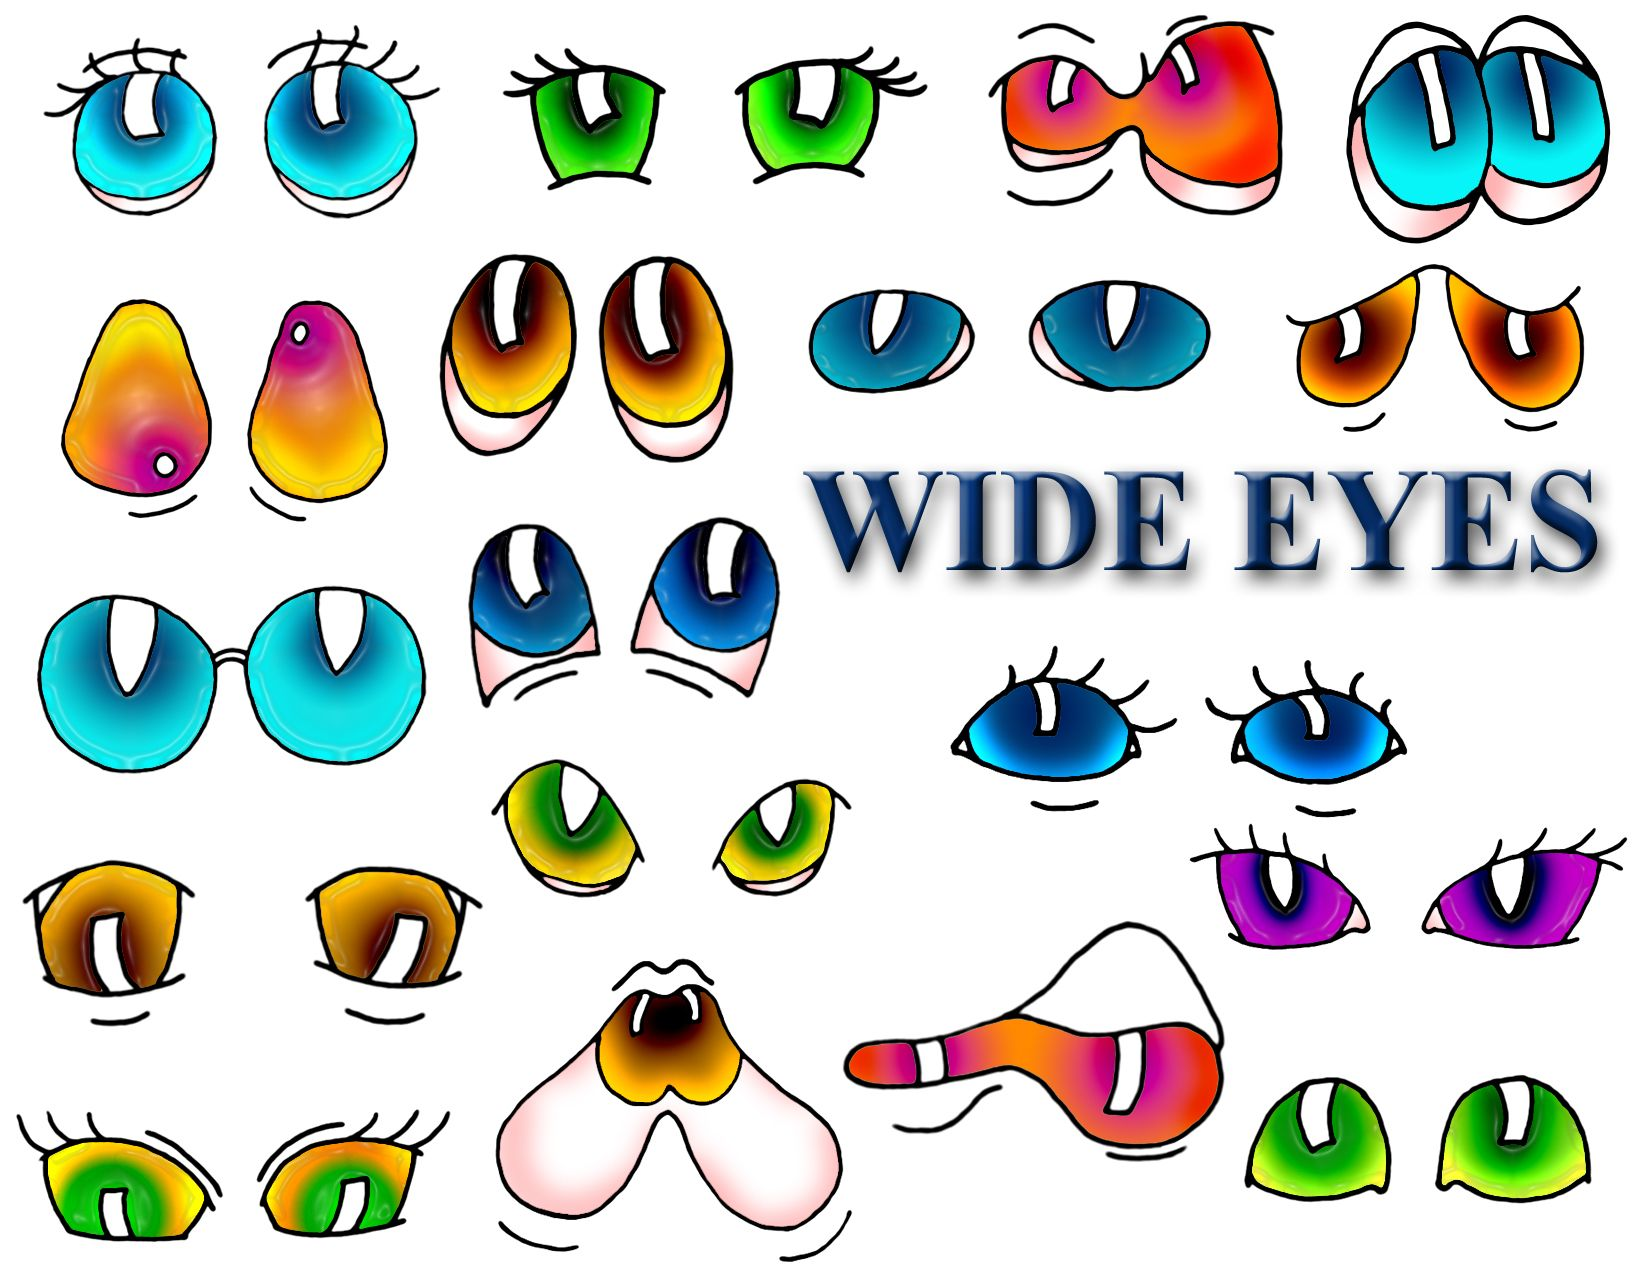 halloween clipart spooky eyes clip art monster eye lurking in the dark creepy scary hallowe en for personal and commercial use [ 1650 x 1275 Pixel ]